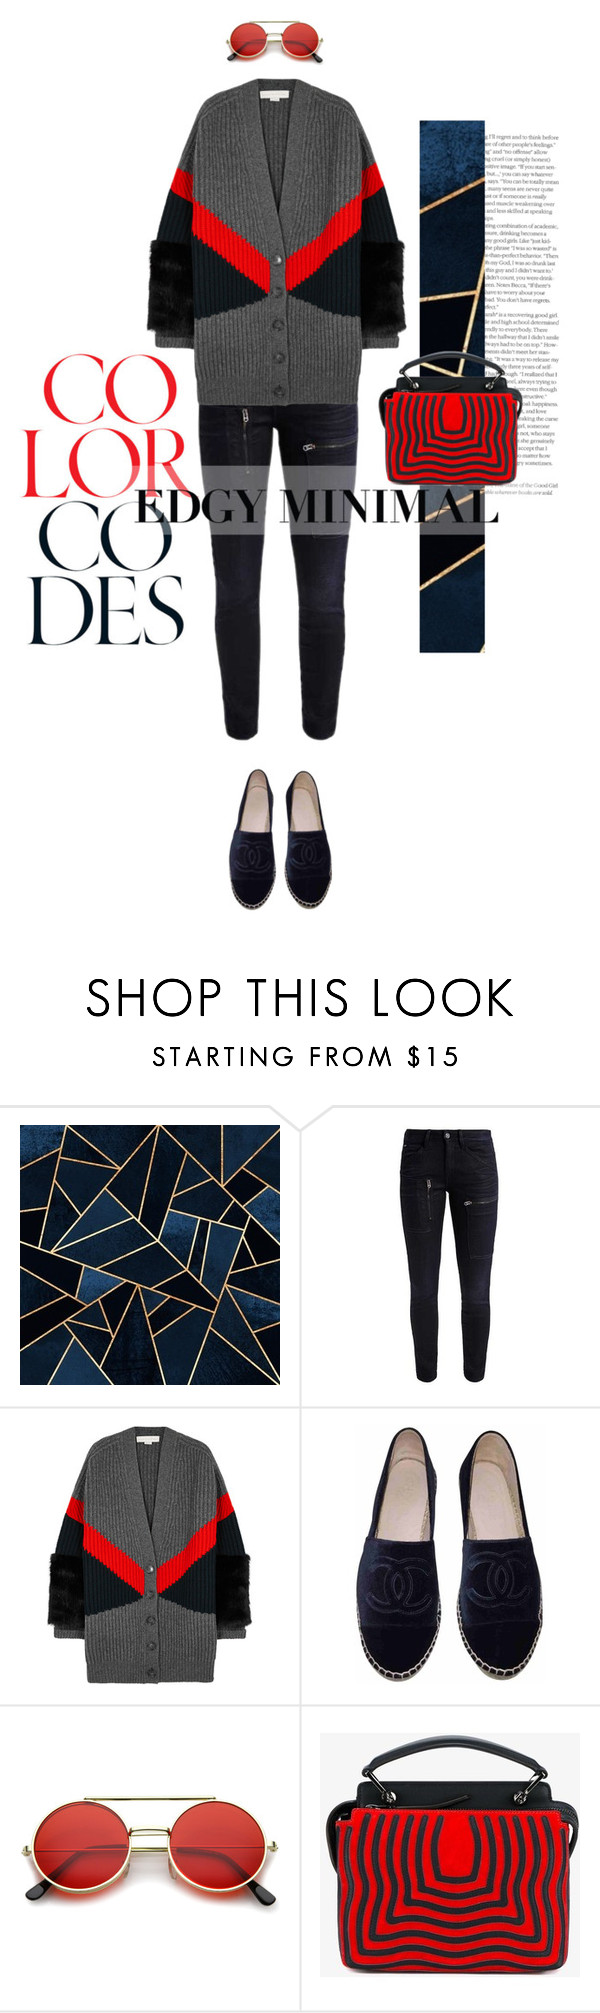 """""""Edgy Minimal"""" by larizoid ❤ liked on Polyvore featuring G-Star, STELLA McCARTNEY, Chanel, ZeroUV and Fendi"""